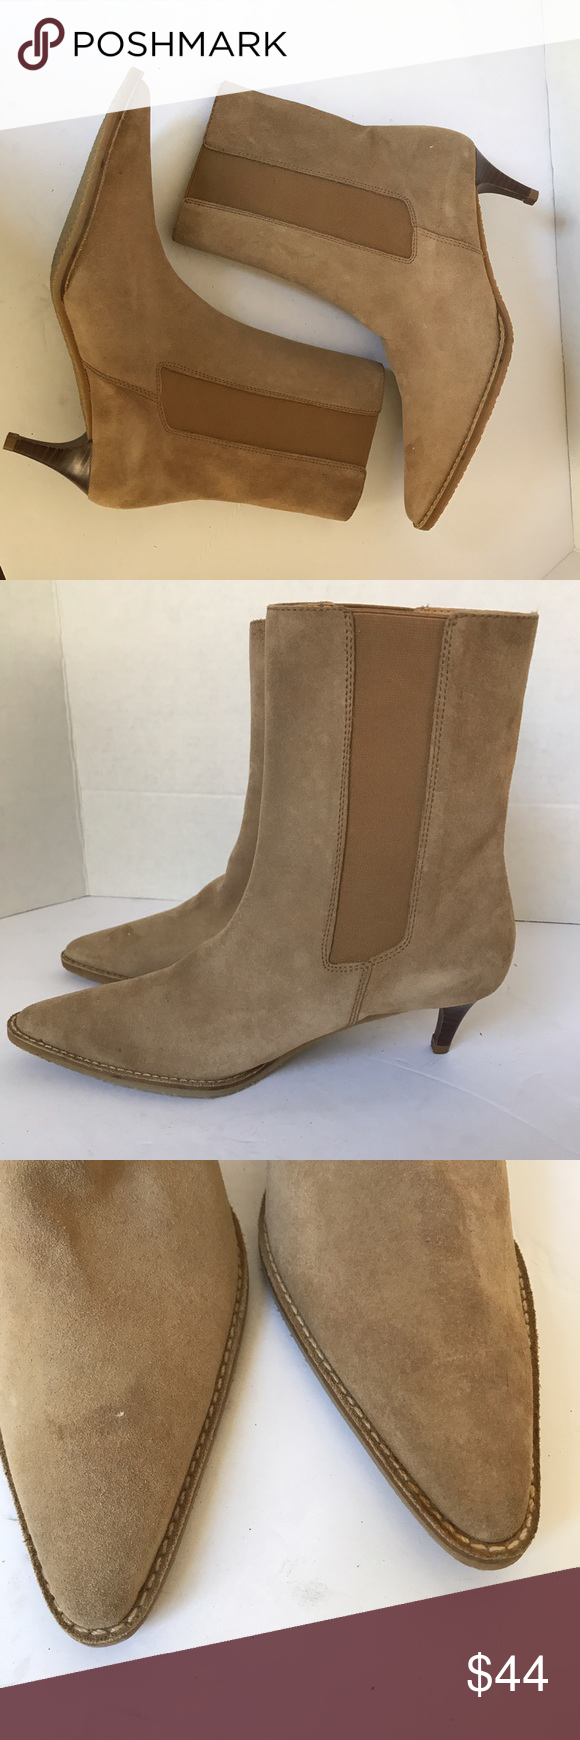 66aa698aef910 Banana republic Pointed Toe kitten heel boots sz 6 Banana republic Pointed  Toe kitten heel boots sz 6M crepe sole in new conditions/ feel free to ask  ...